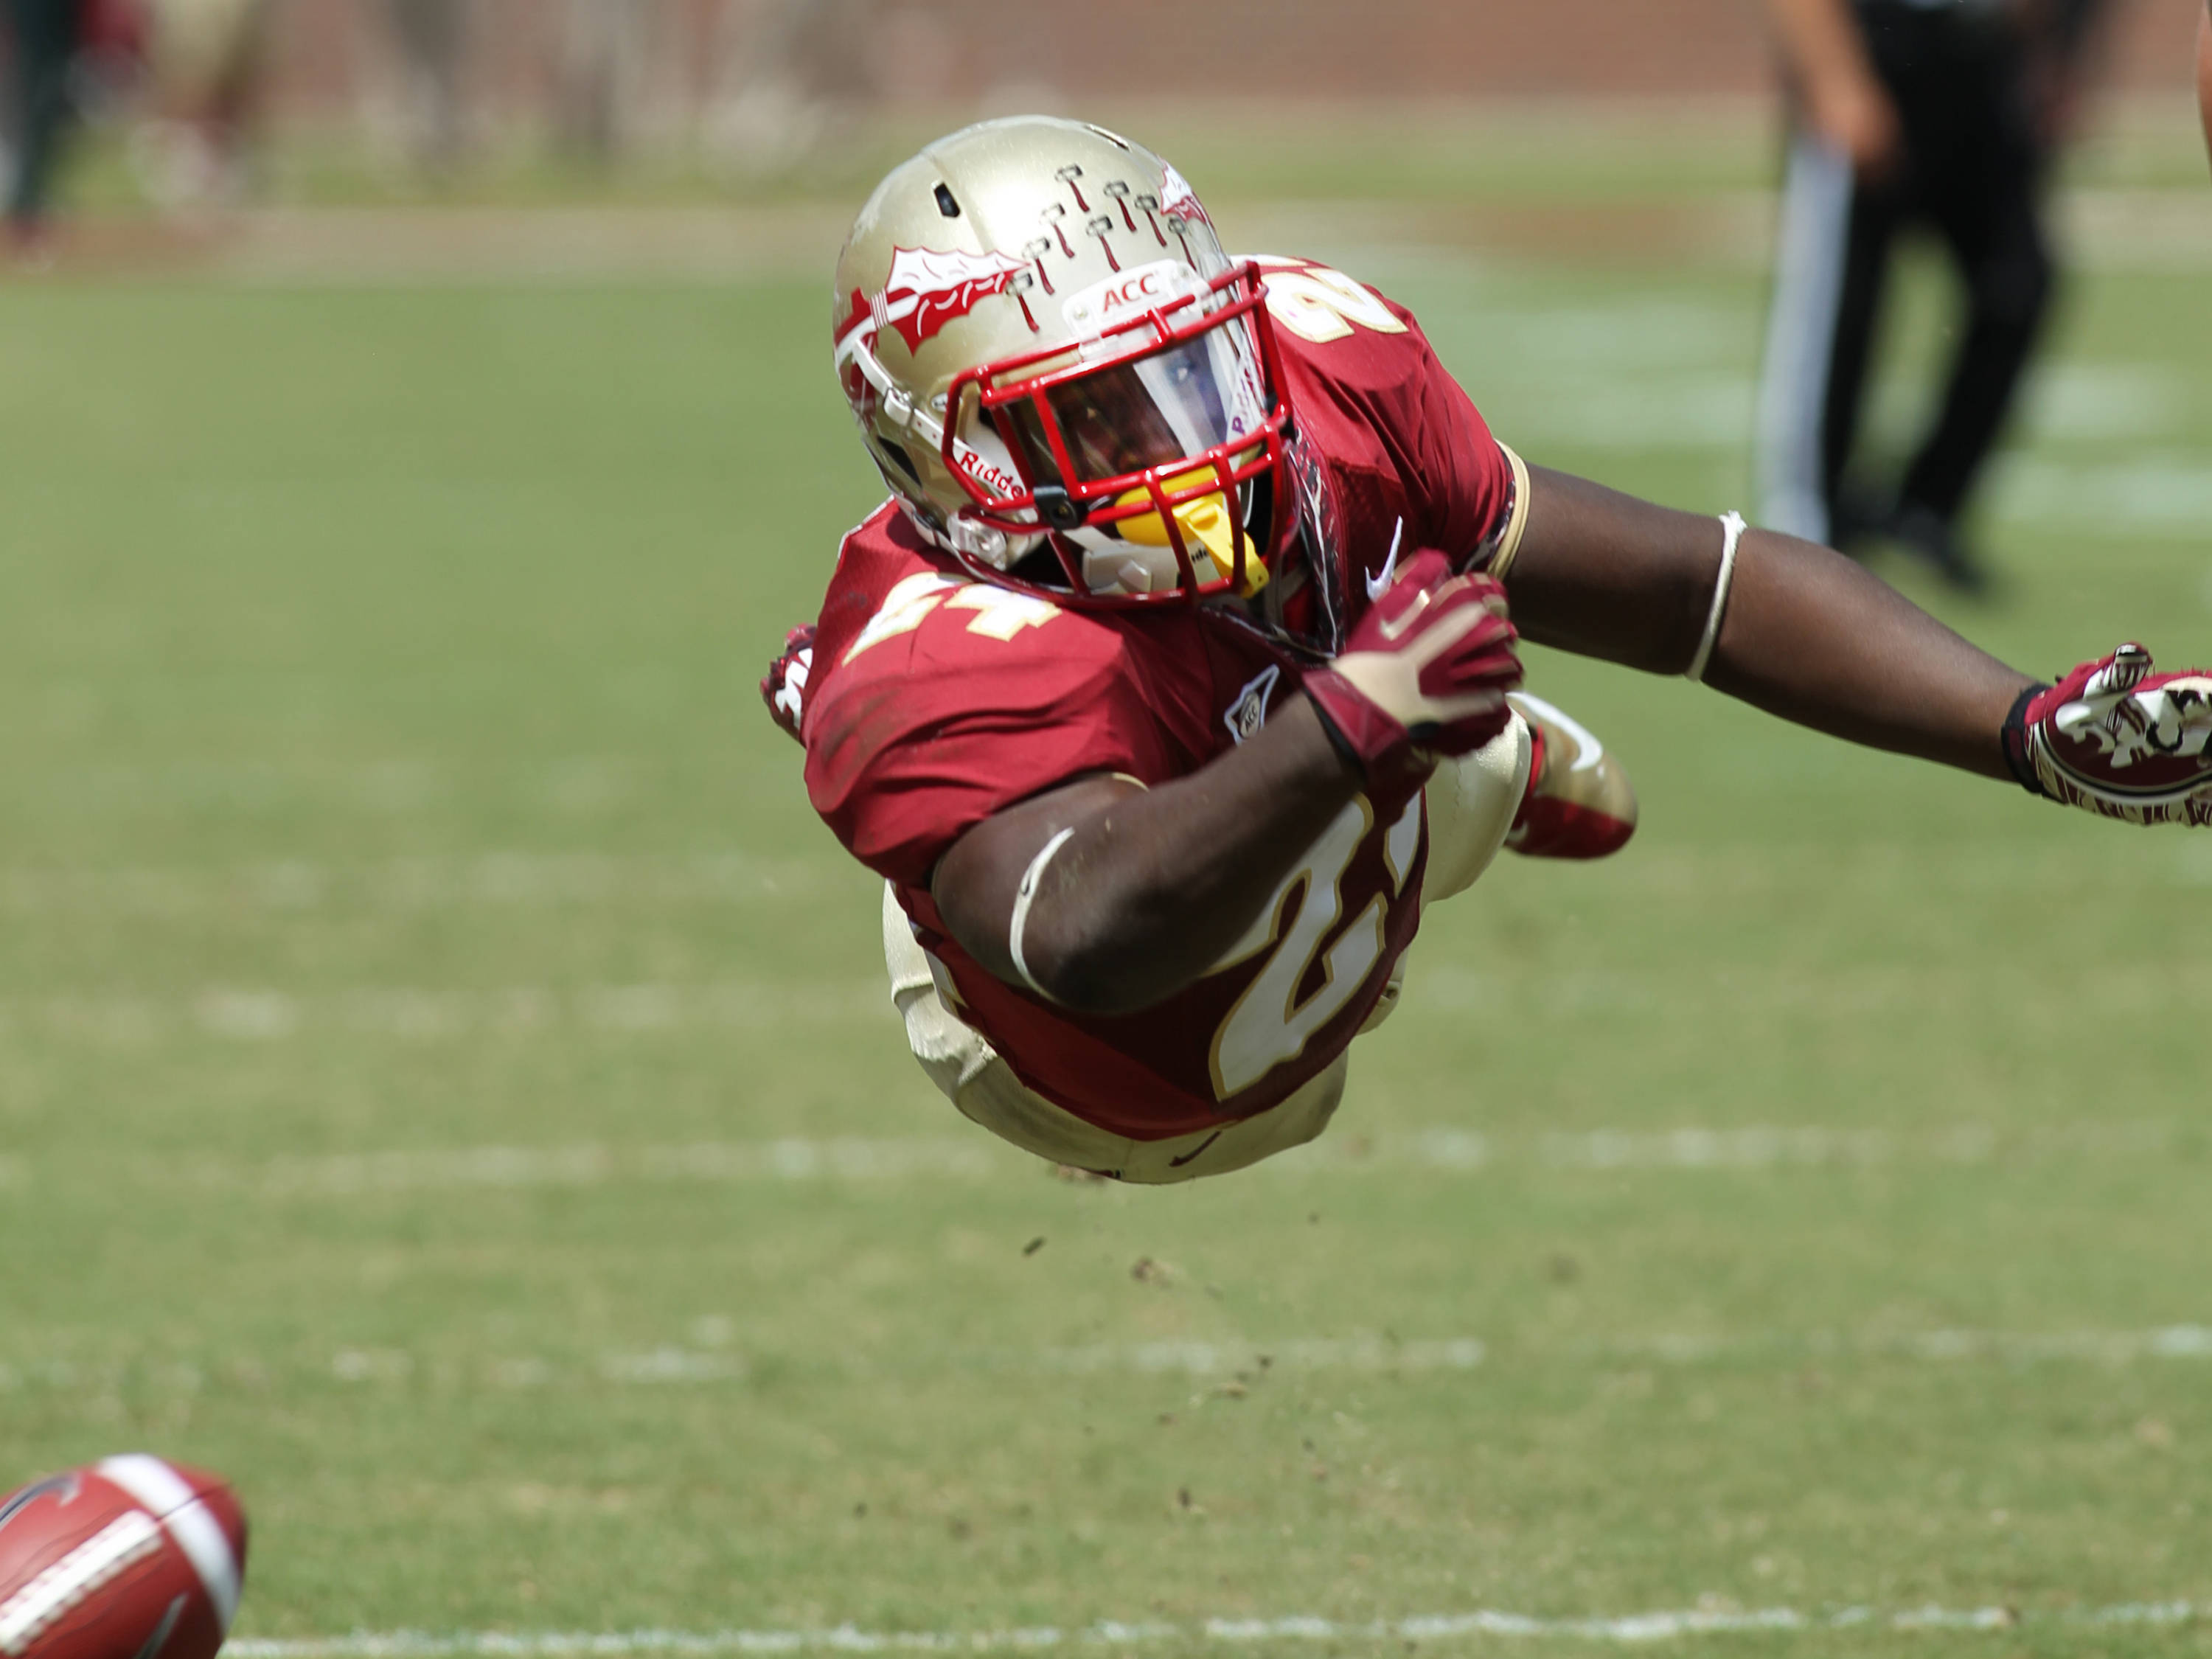 Lonnie Pryor (24) reaching for a pass, FSU vs Wake Forest, 9/15/12 (Photo by Steve Musco)